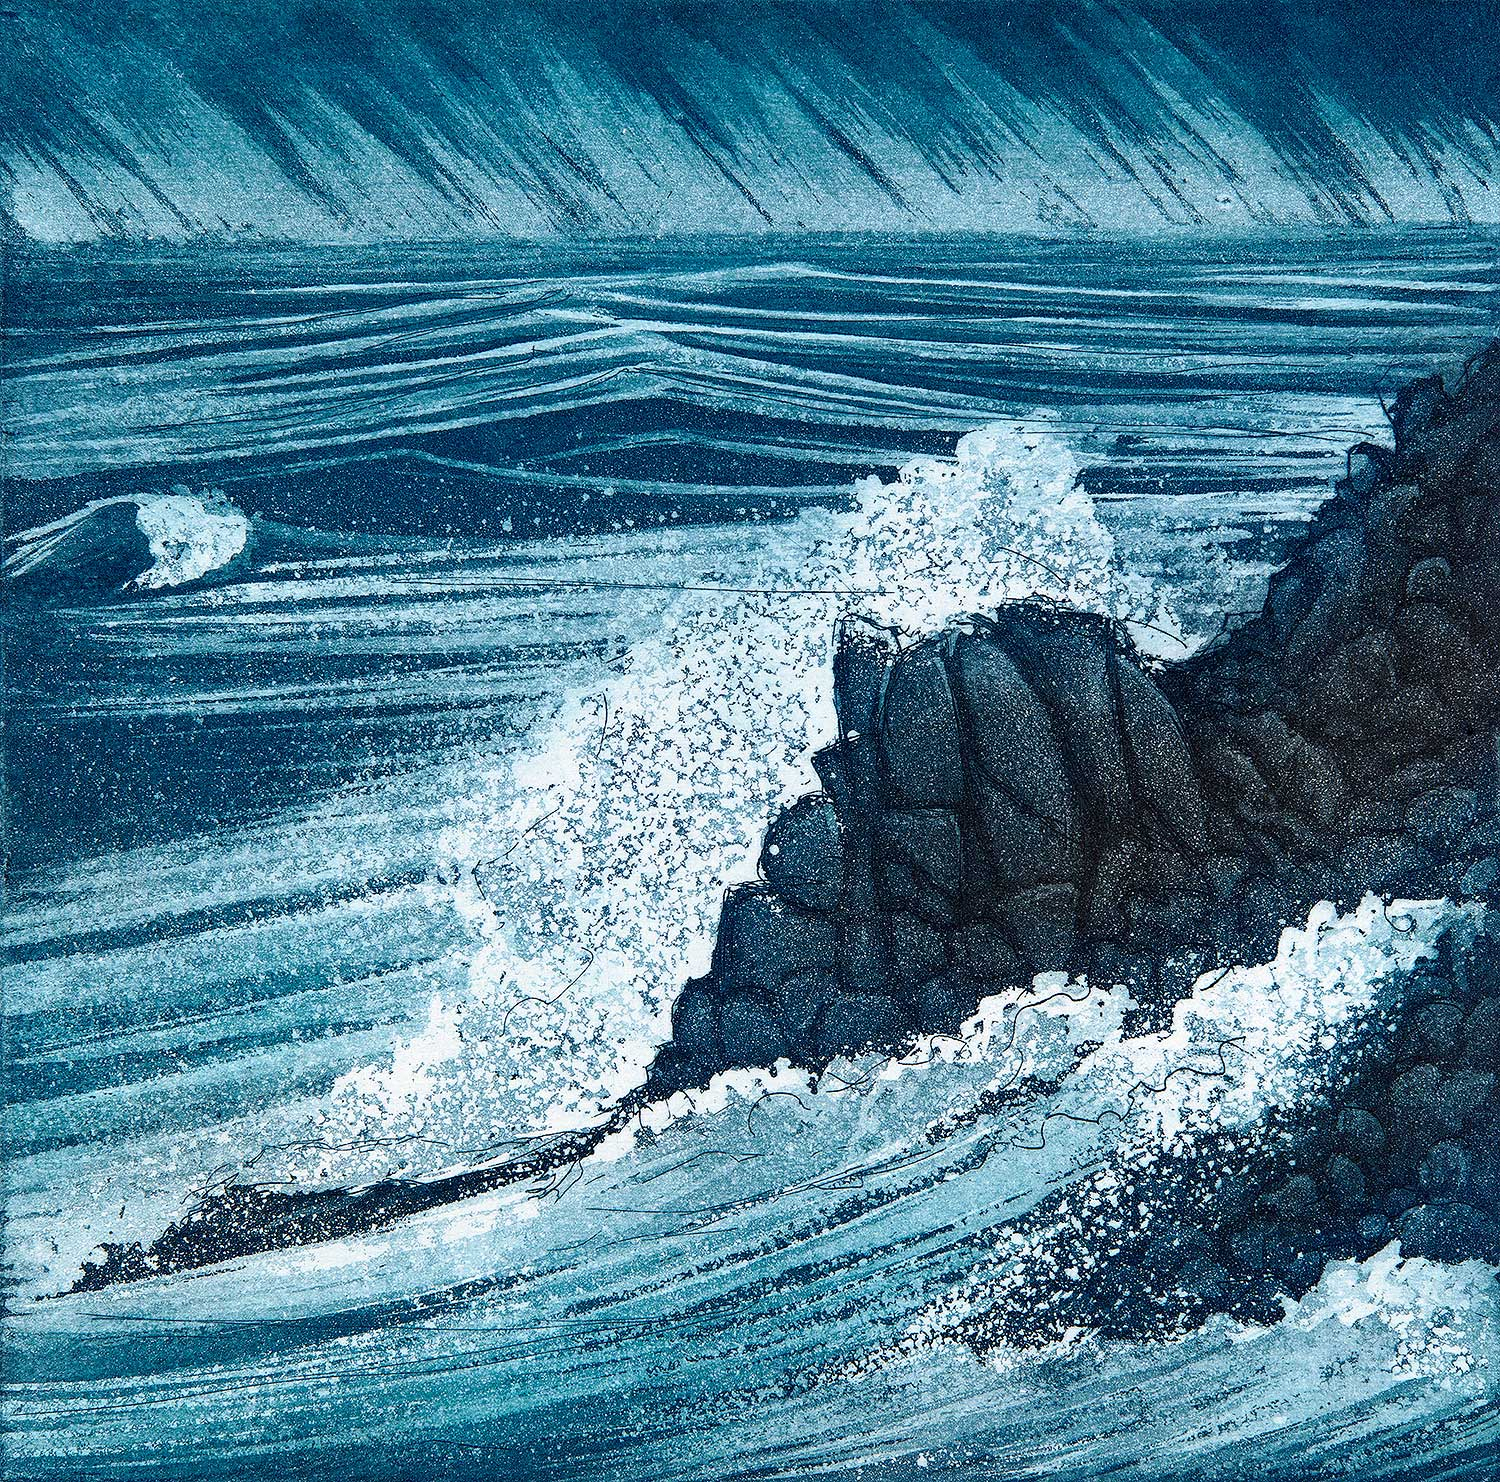 'Sea Spray' by Morna Rhys